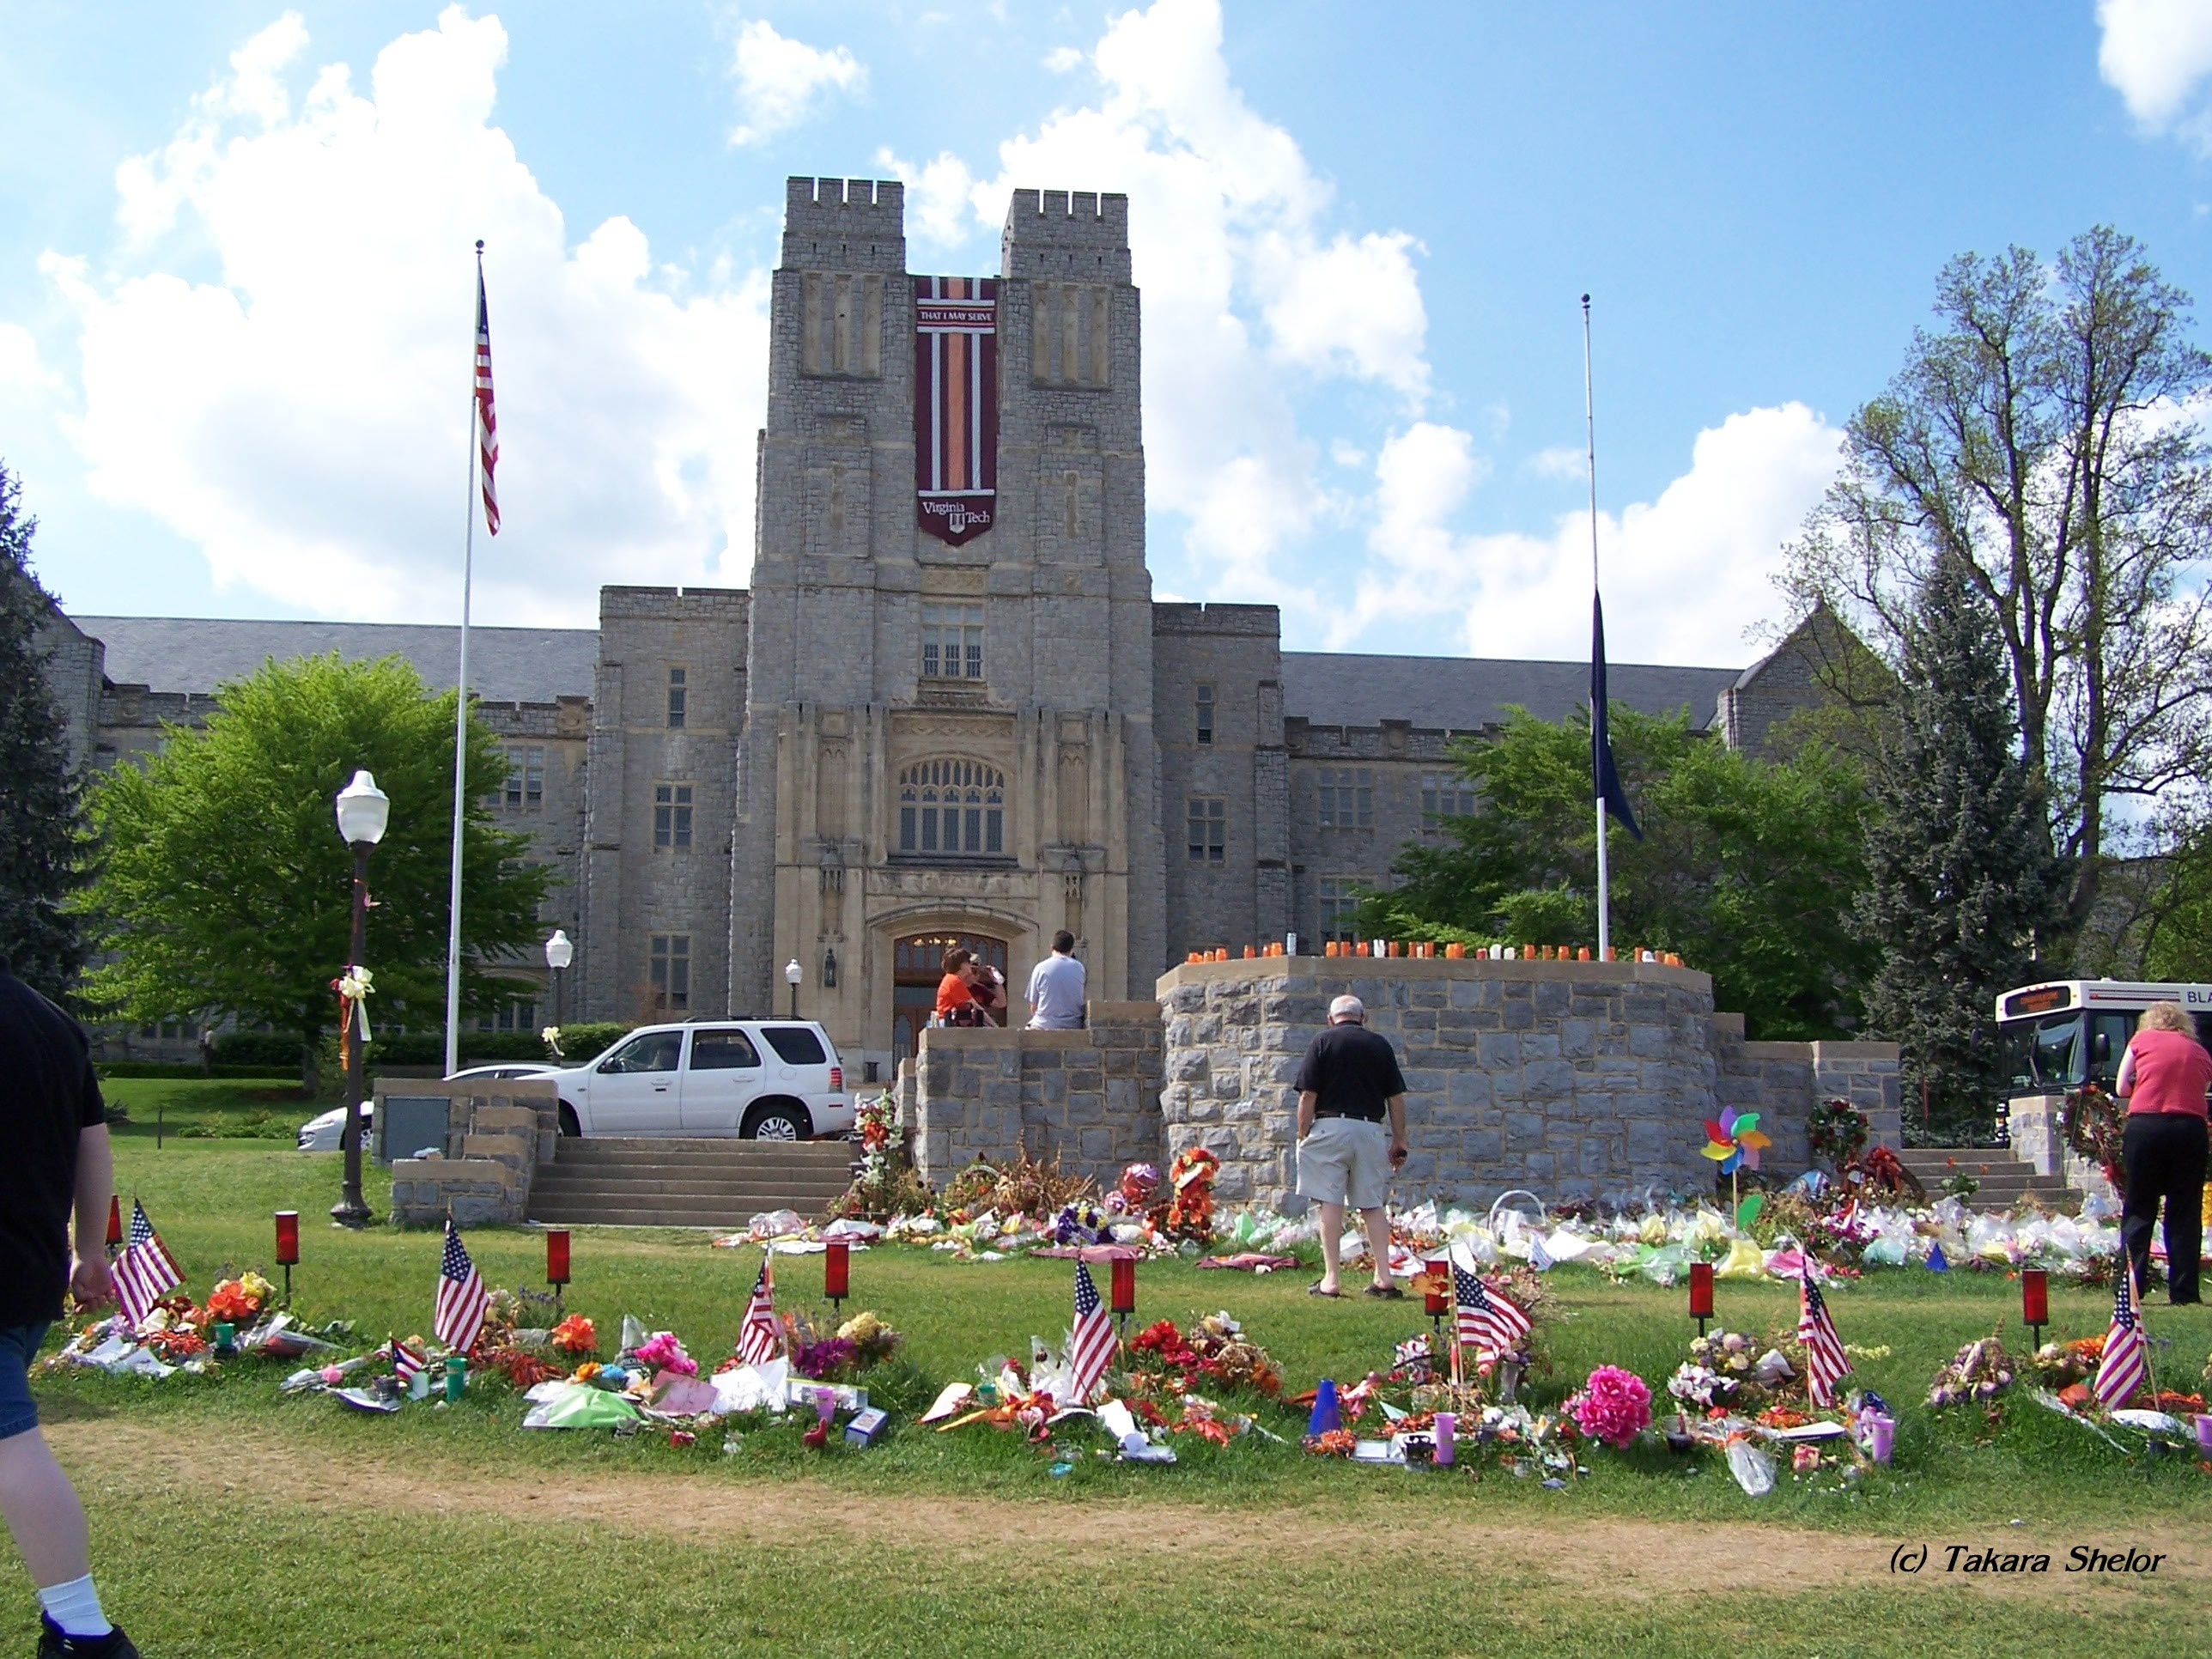 Virginia Tech Massacre Memorial by Takara